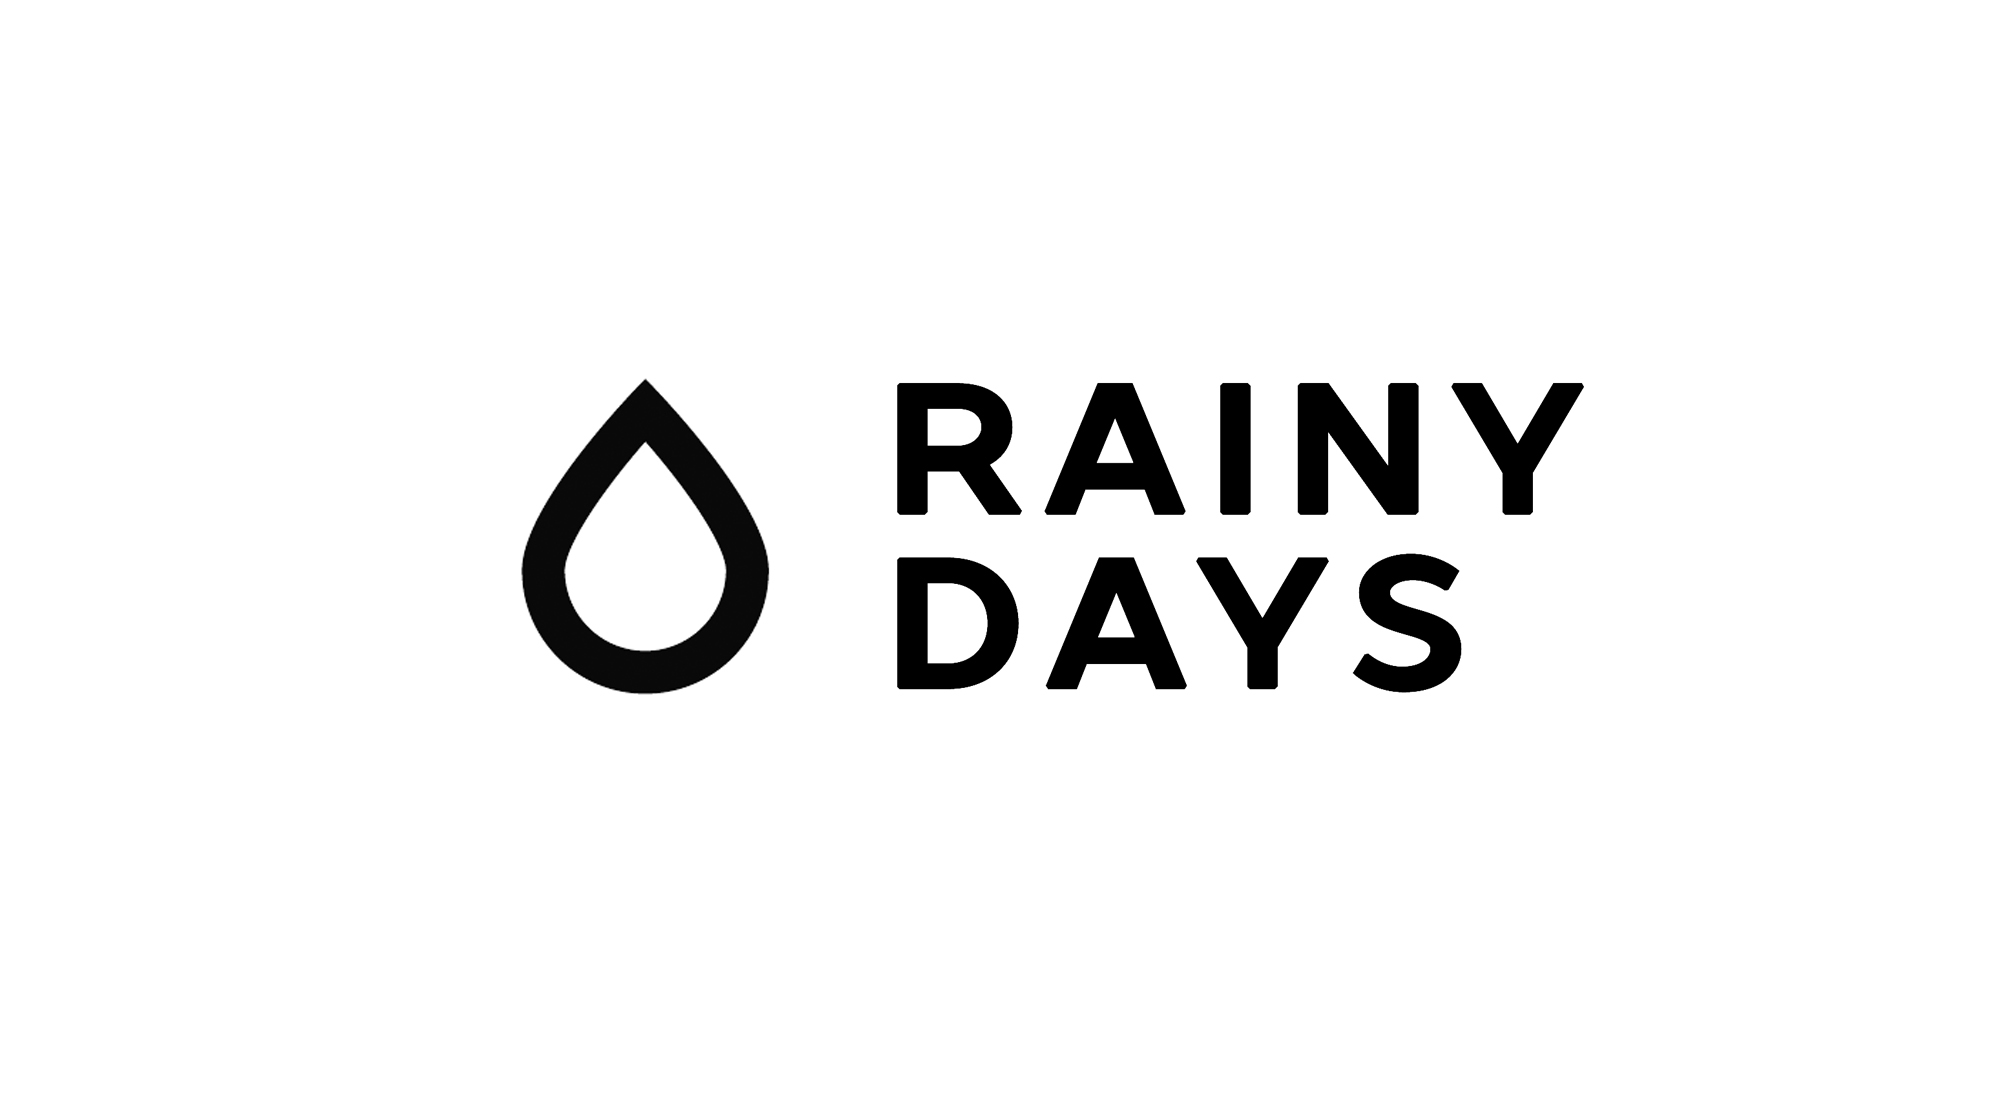 NEW RELEASES: Rainy Days Records Releases Digital Albums From Arseny Rykov and The Evgeny Ponomarev Quartet